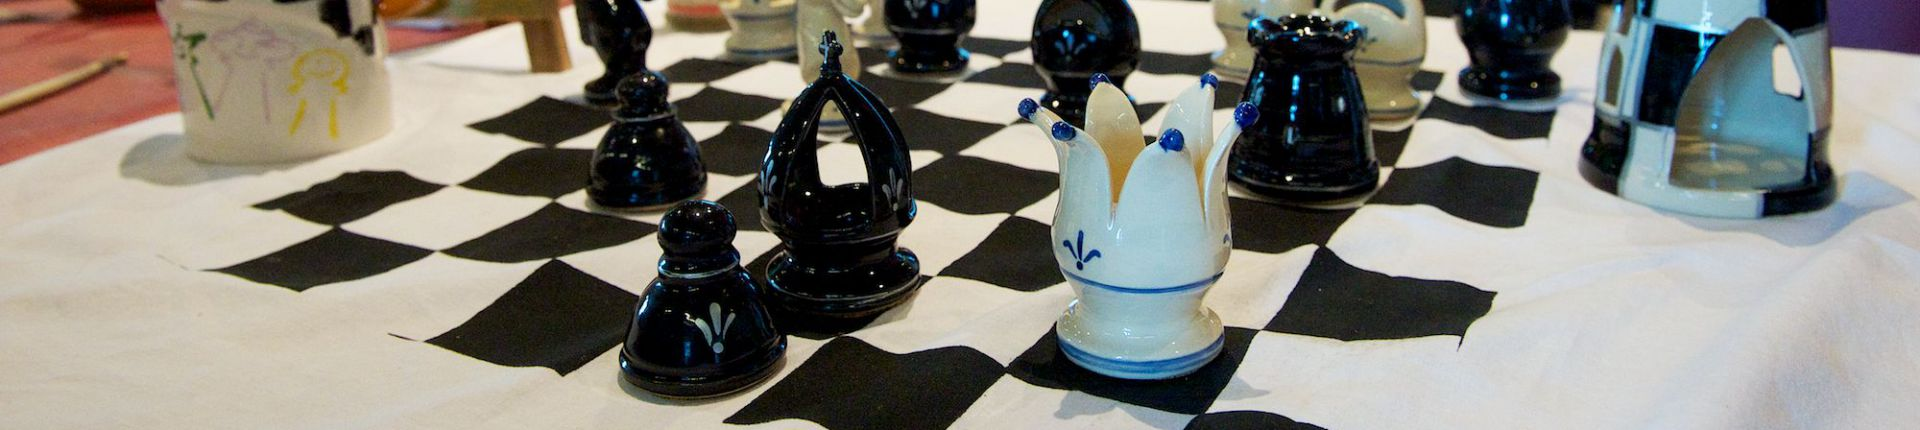 chess, Global Chess Festival